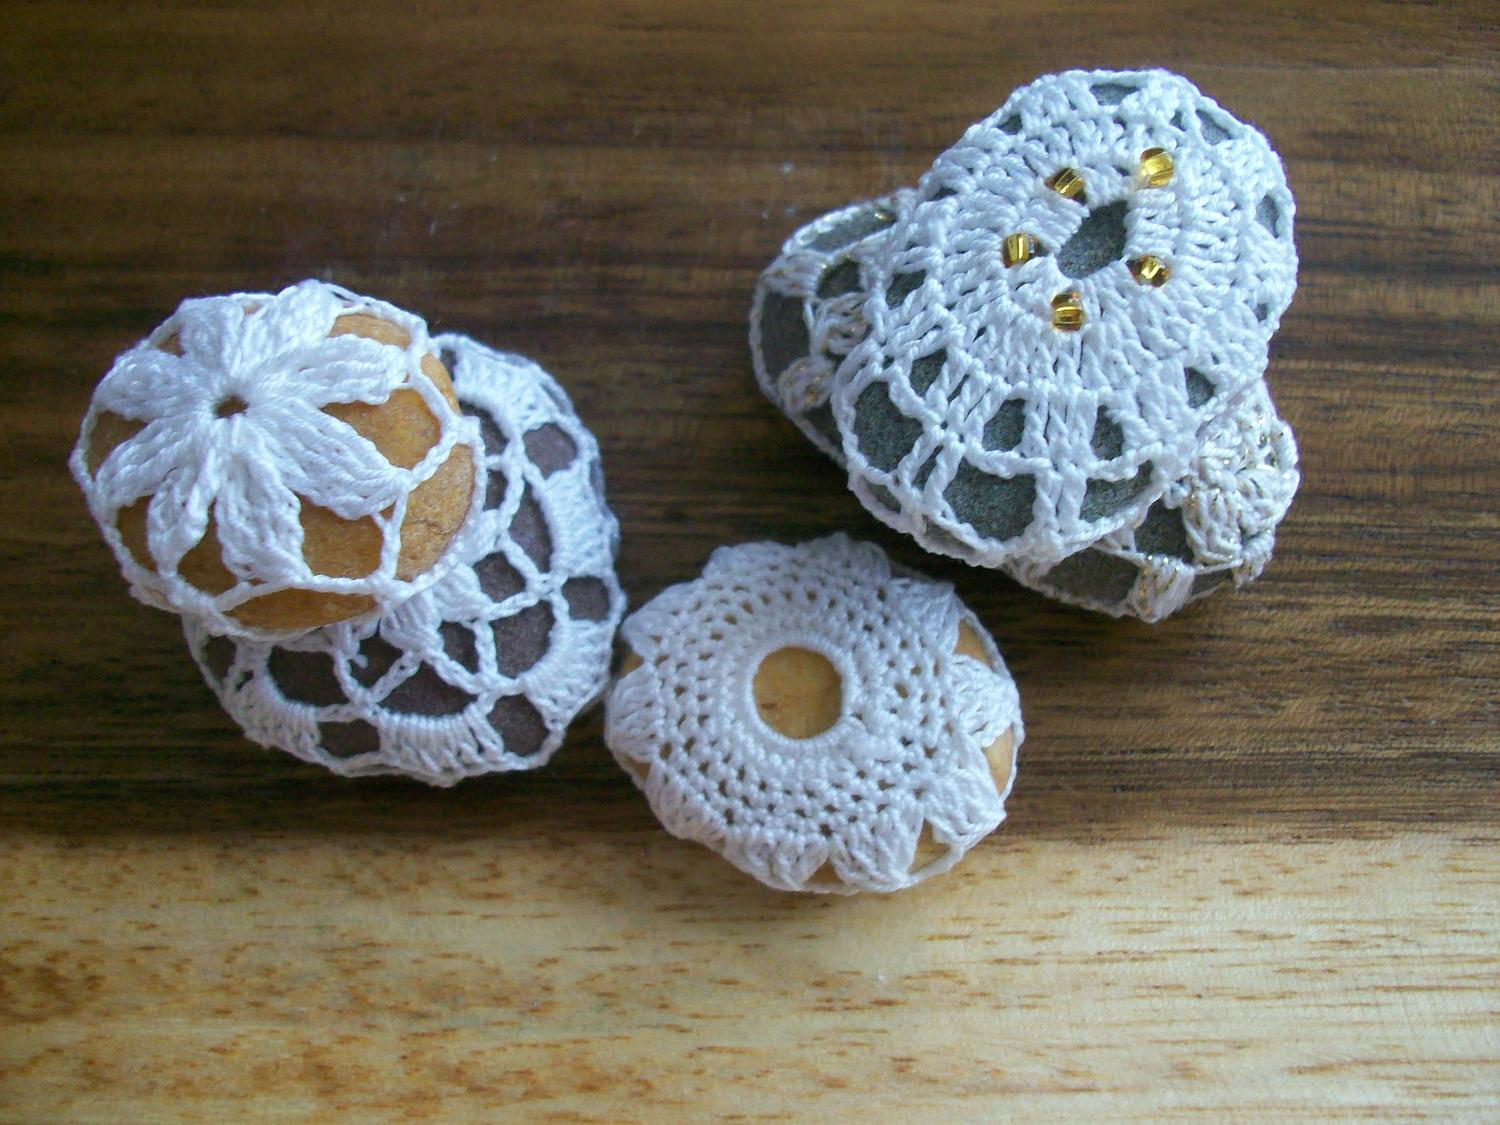 Crochet Covered Beach Stones ,Wedding,gift,summer .home decor ,decoration